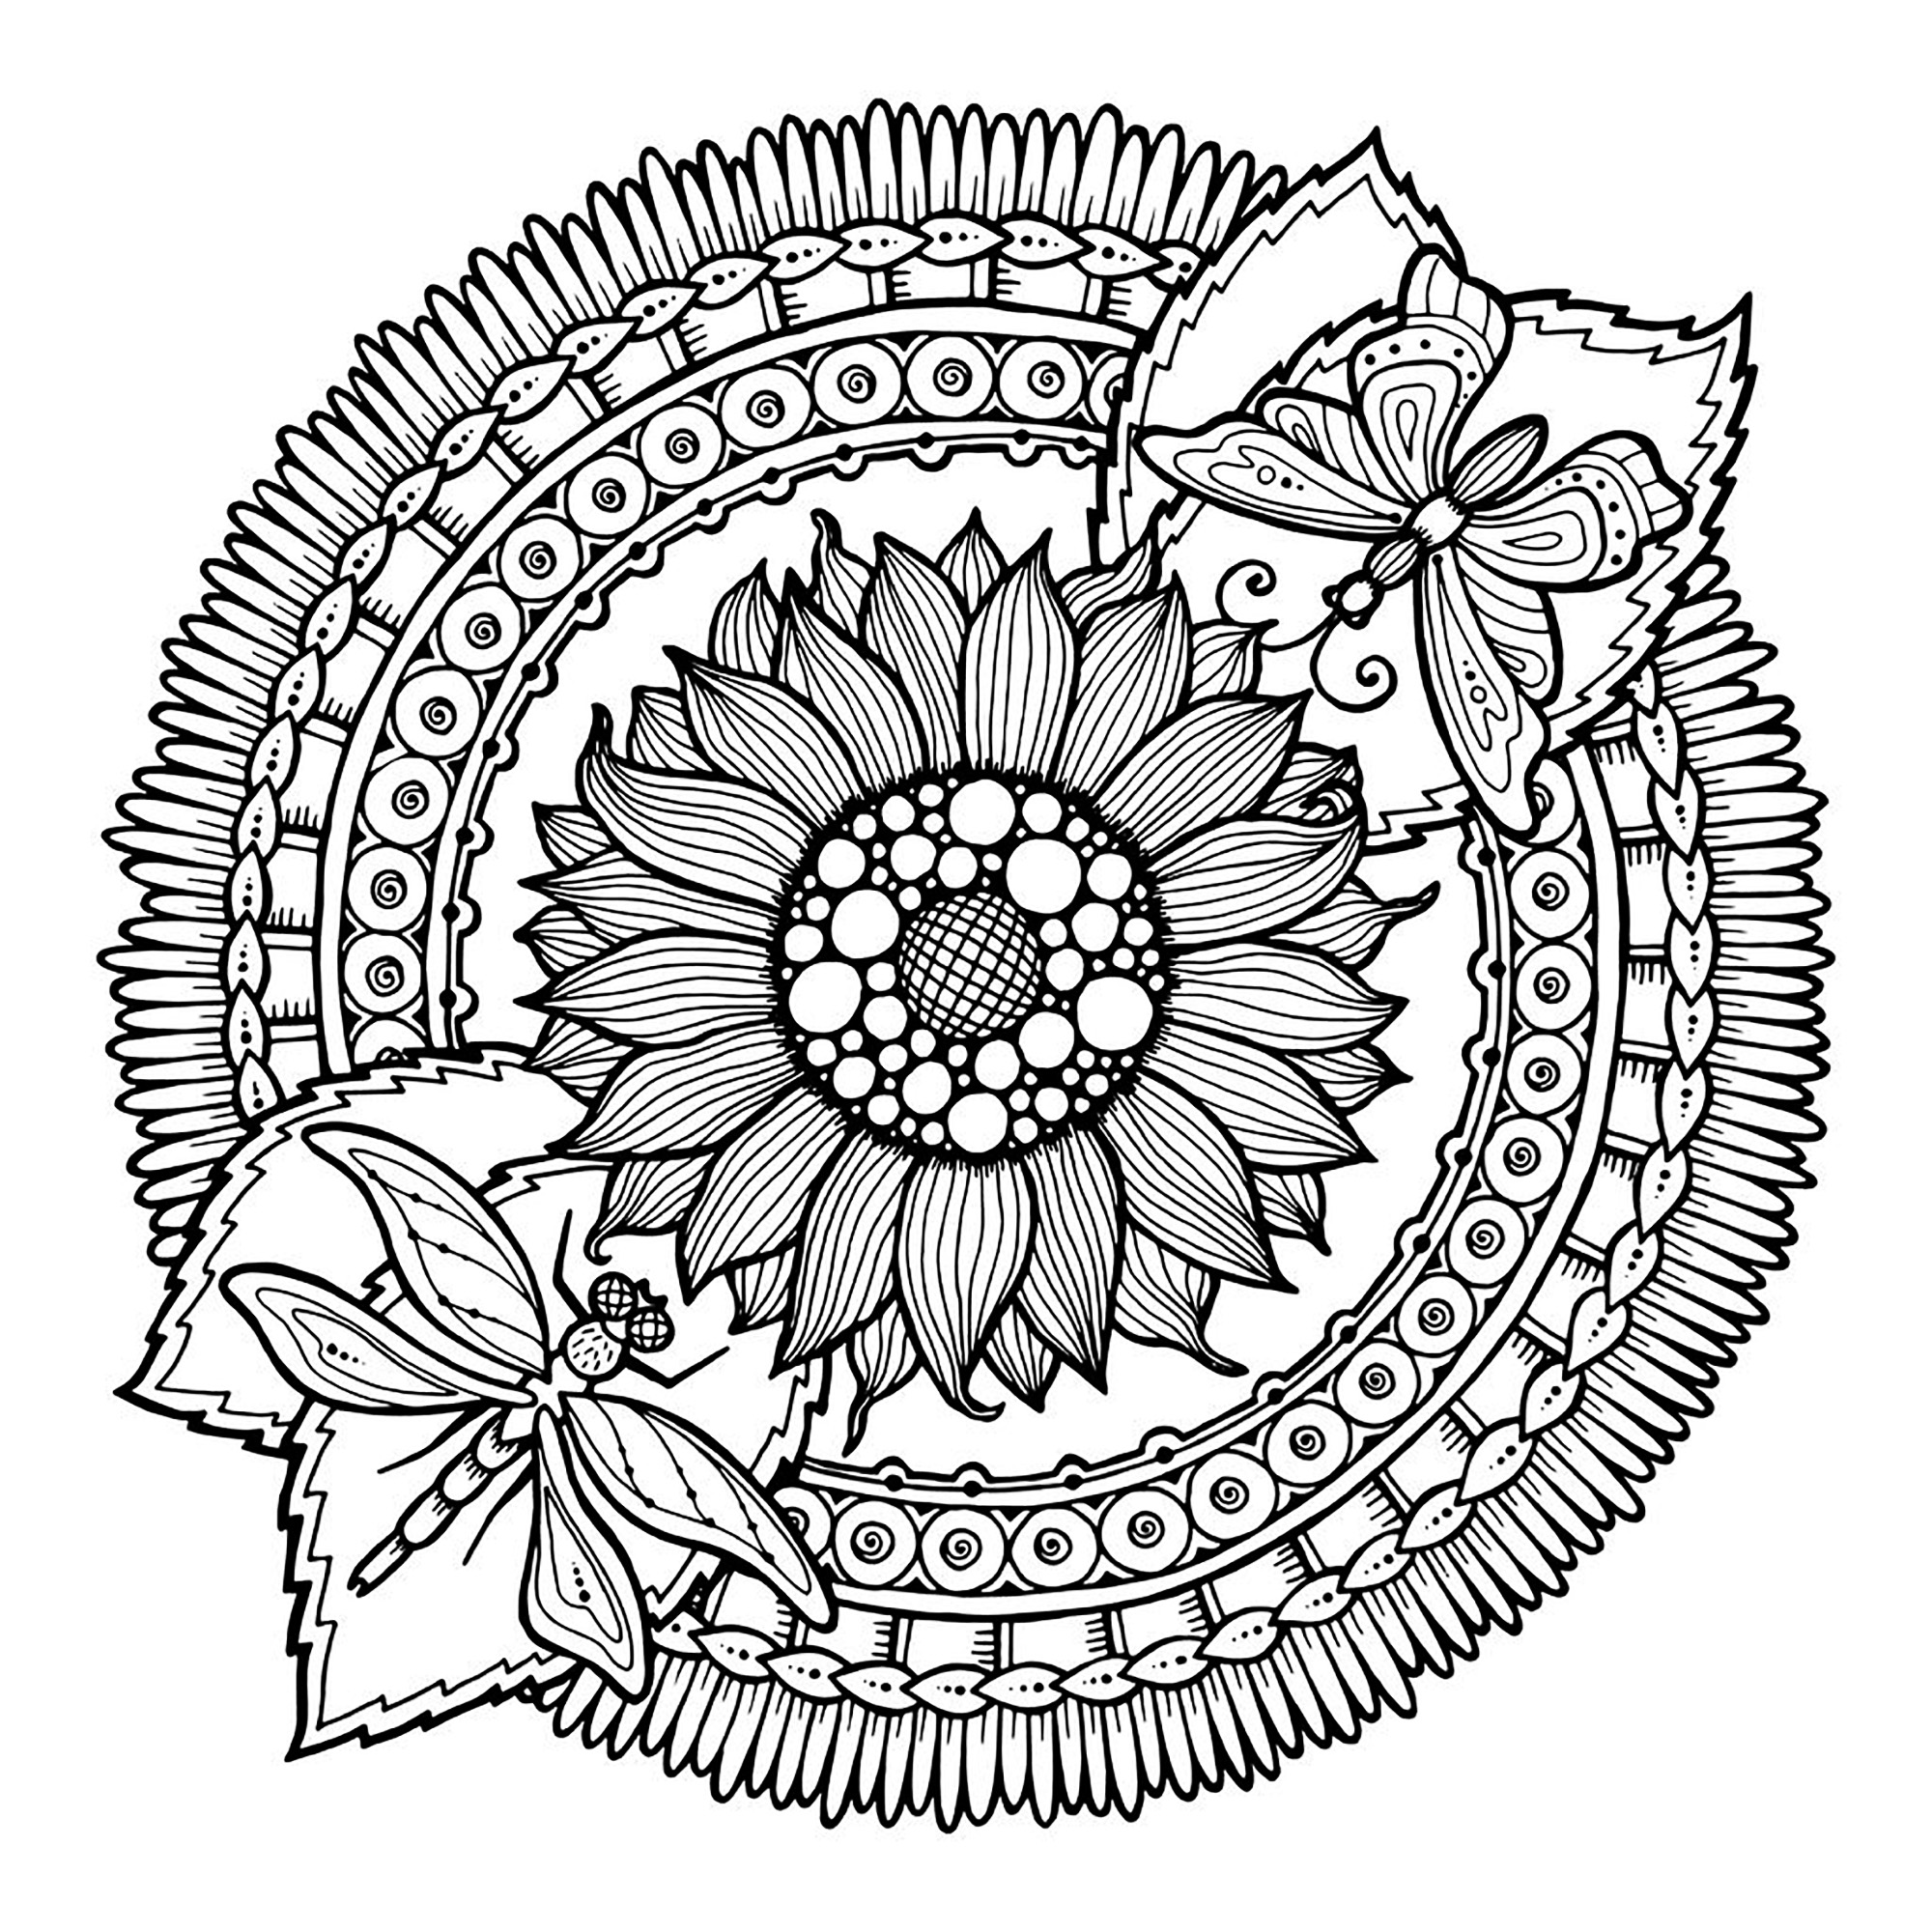 Coloring pages adults mandala dragonfly and flowers by juliasnegireva